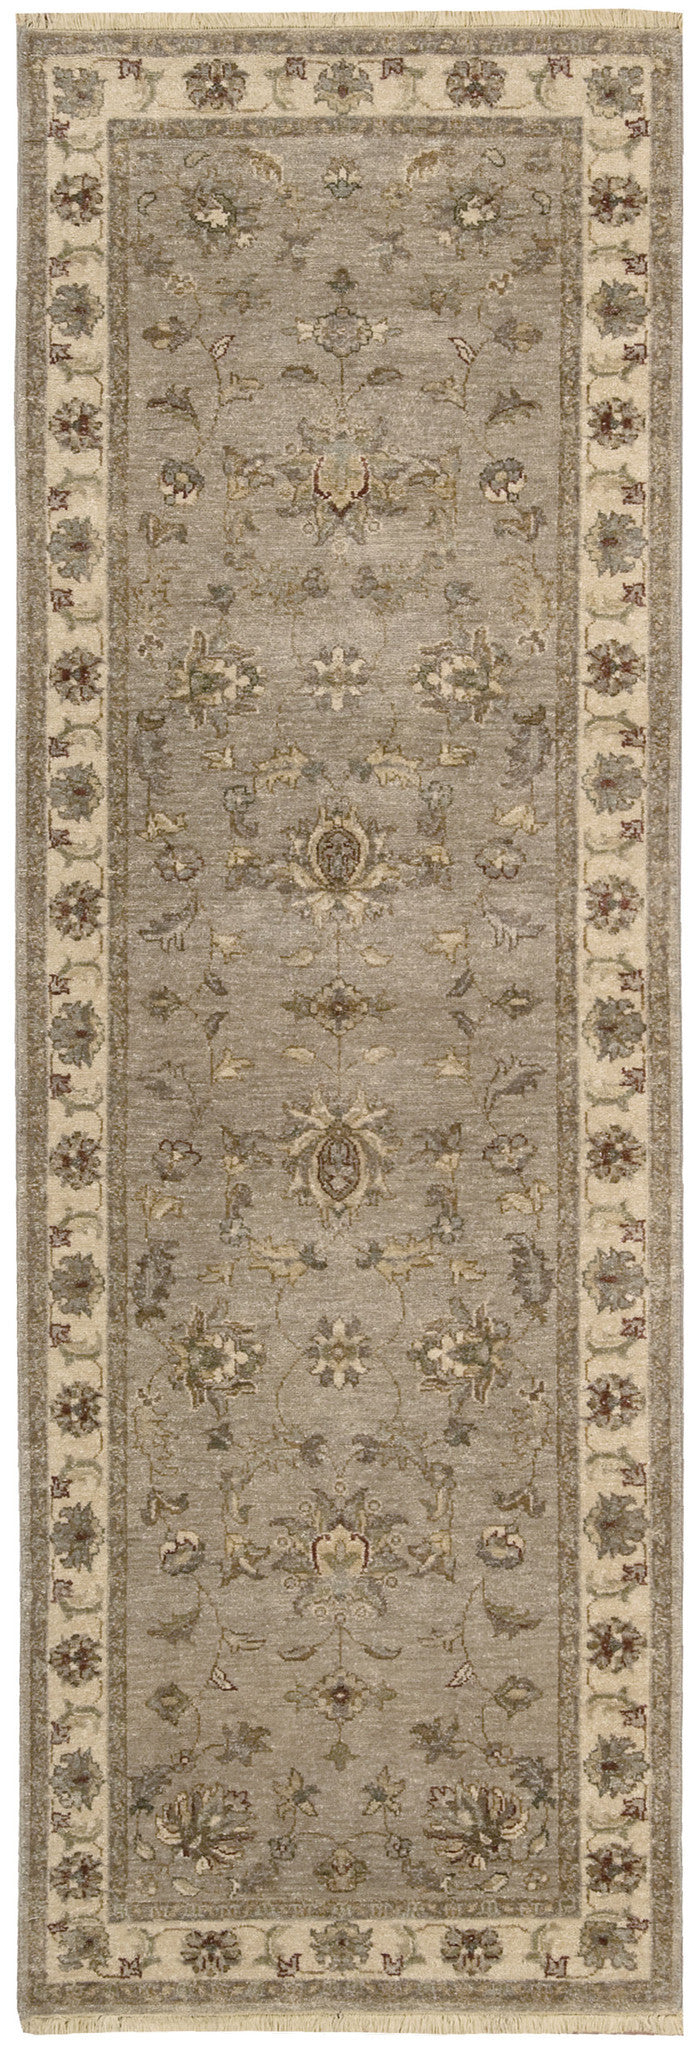 Nourison Legend Grey Area Rug LD02 GRY